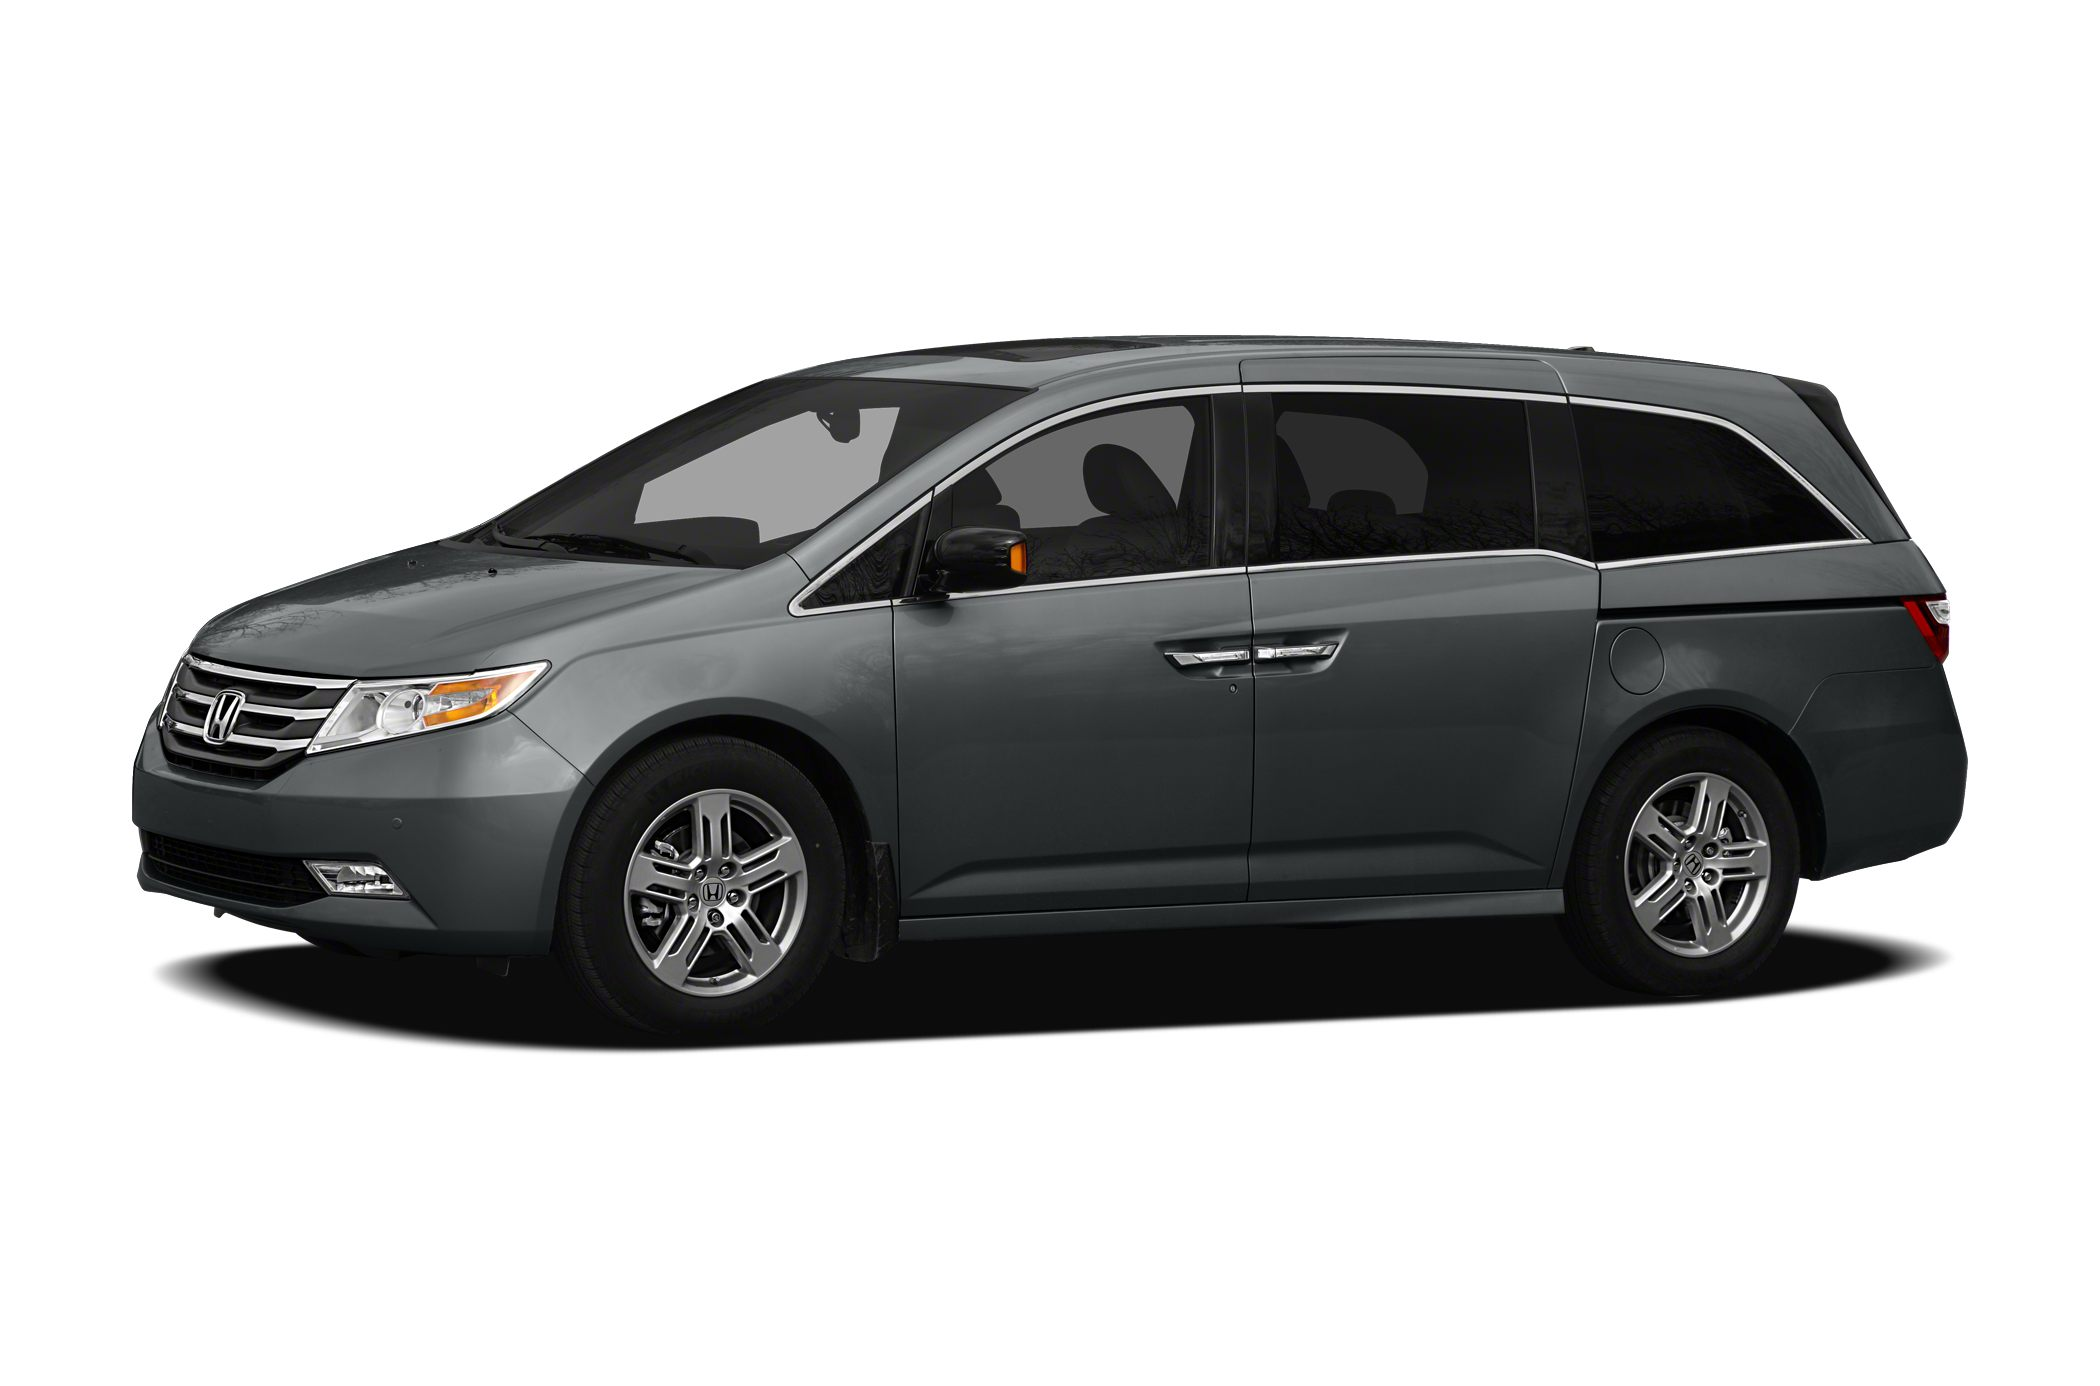 2012 Honda Odyssey Touring Elite Minivan for sale in Kennewick for $35,486 with 45,738 miles.